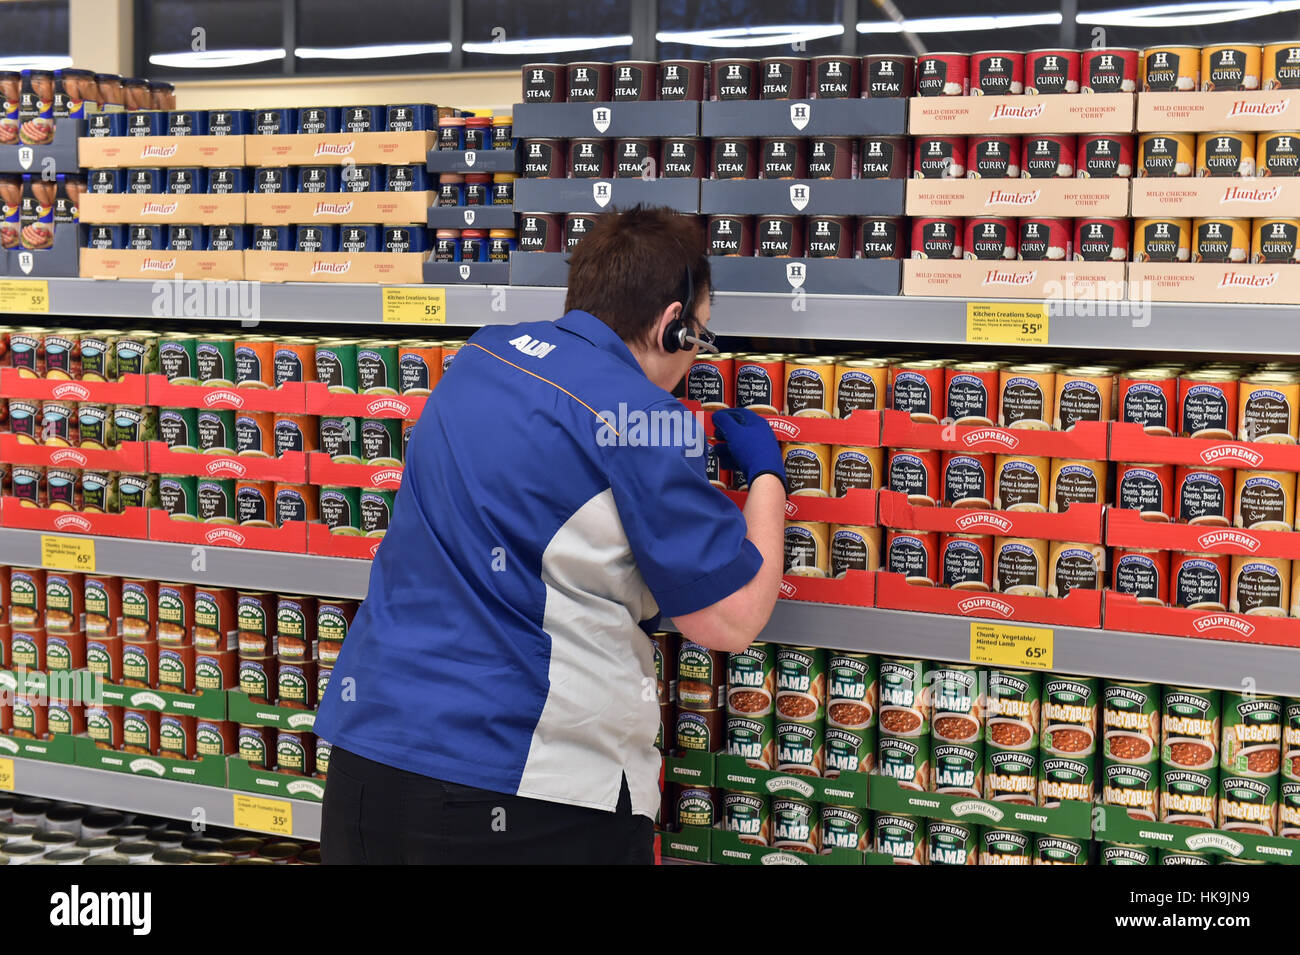 Supermarket shelf stacking tins of soup and stew at Aldi supermarket. - Stock Image